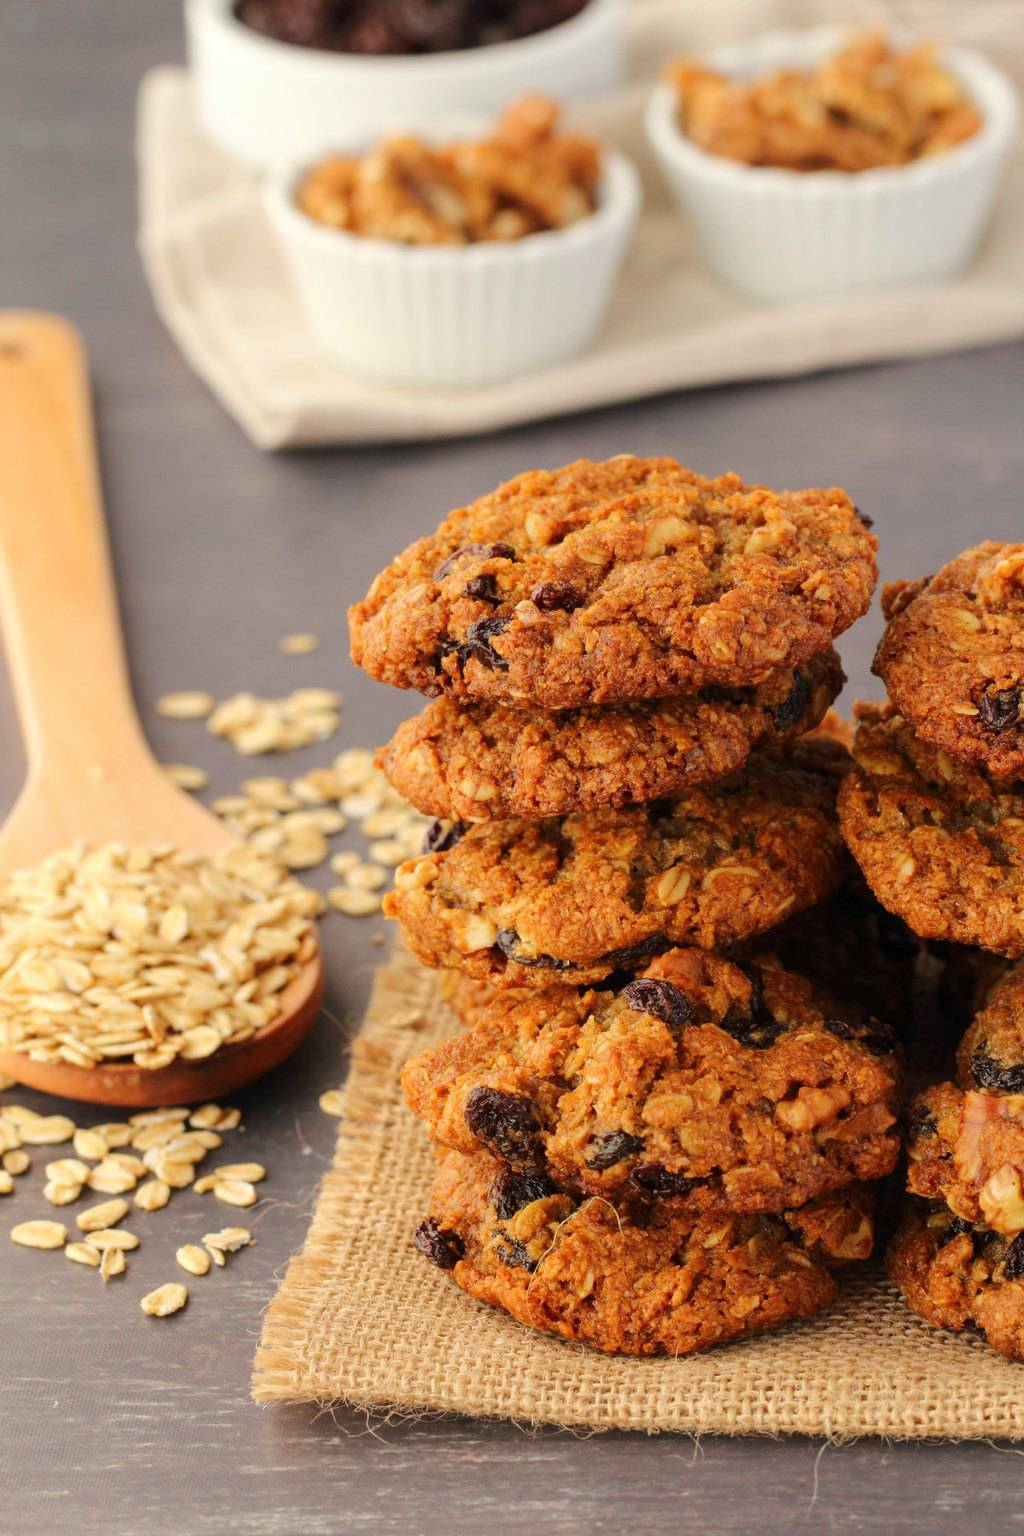 Vegan oatmeal raisin cookies stacked up on a woven napkin, scattered oats and a wooden spoon in the background.